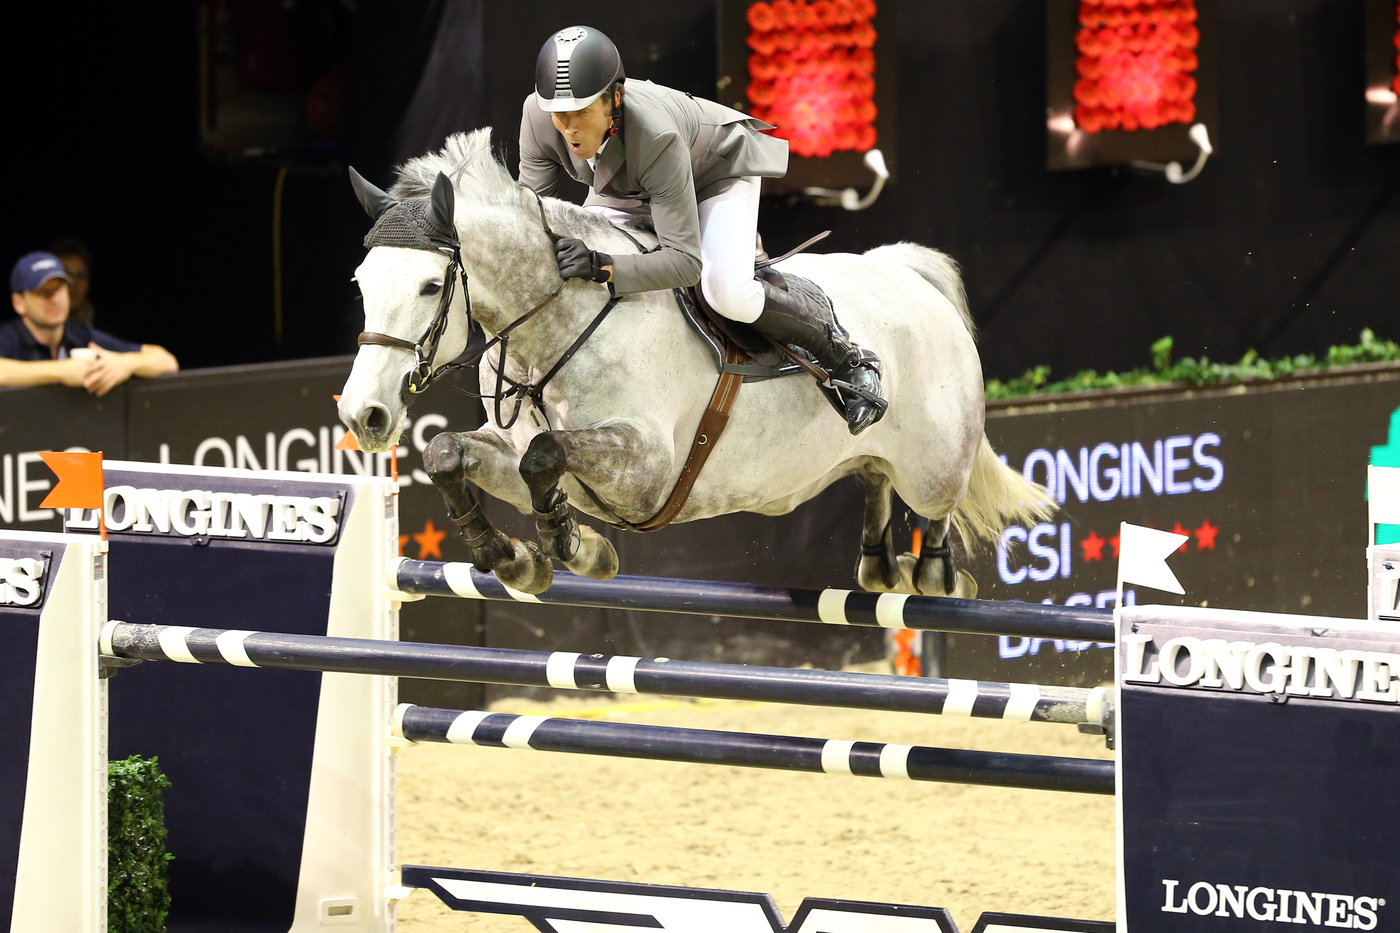 Longines Show Jumping Event: Rolf-Göran Bengtsson on Casall ASK wins the Longines Grand Prix at Longines CSI Basel 2